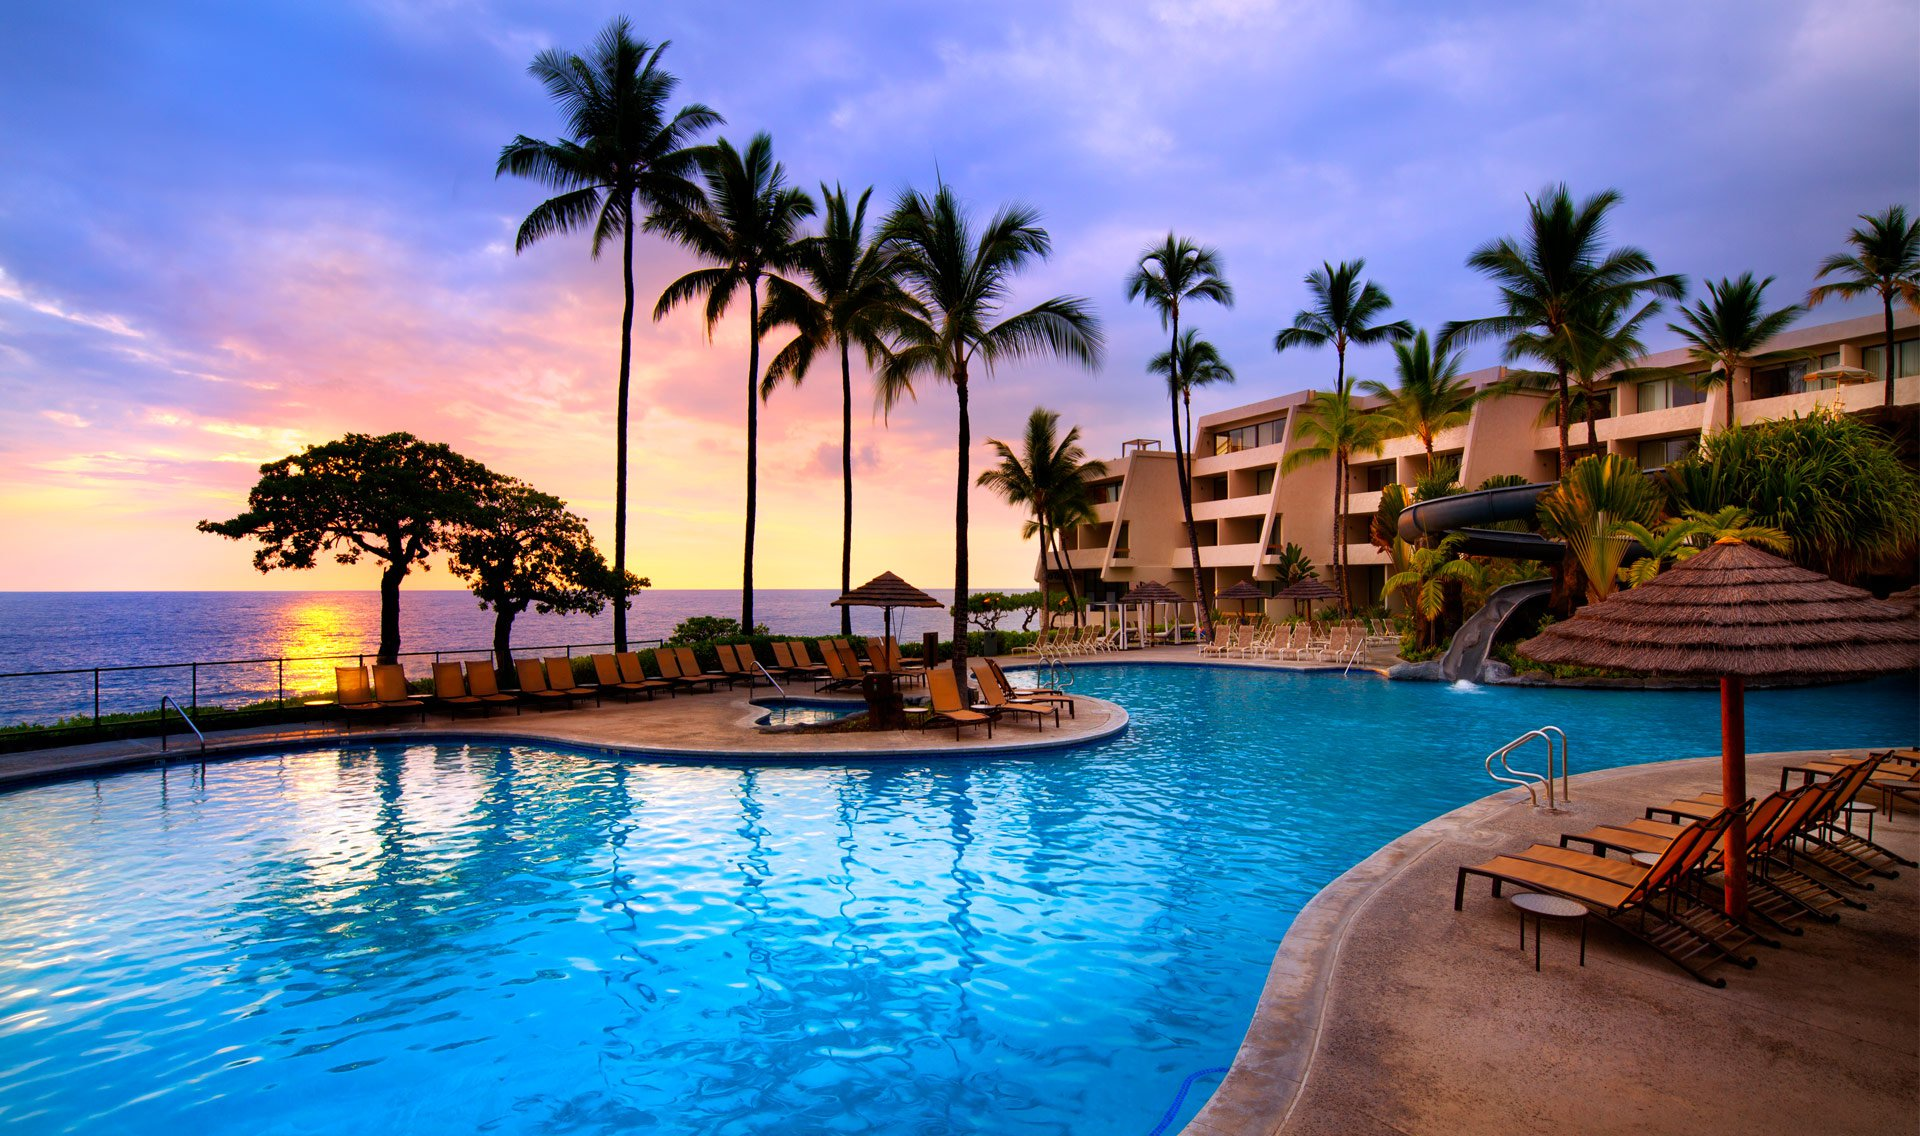 sheratonkona-pool-hawaii